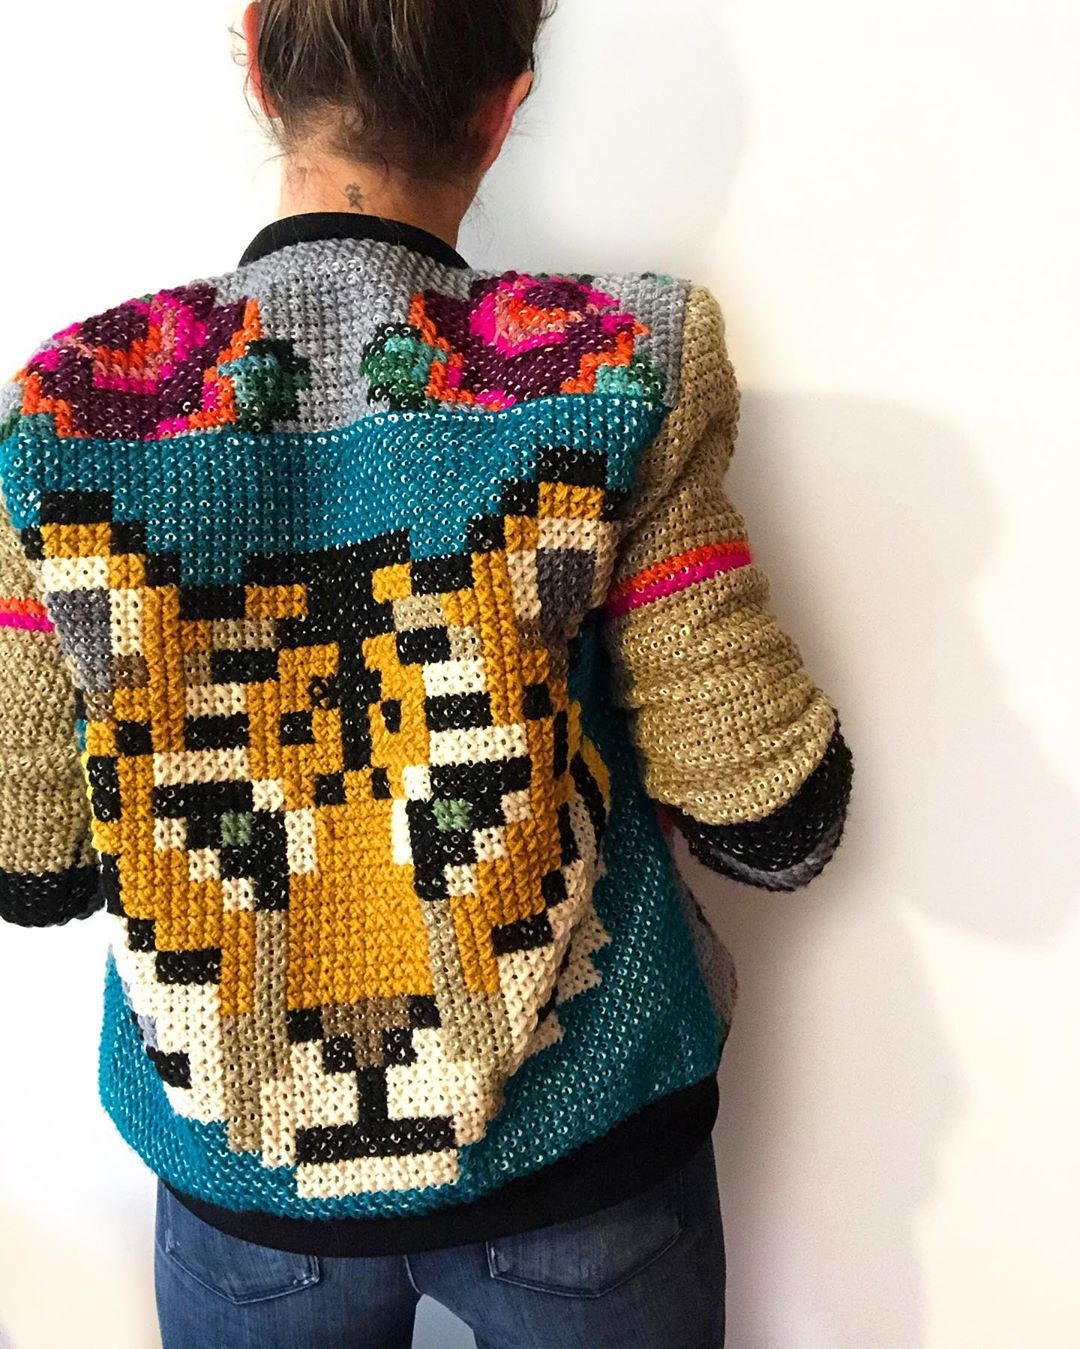 This Statement-Making Jacket is Made Using Cozy Cross Stitch